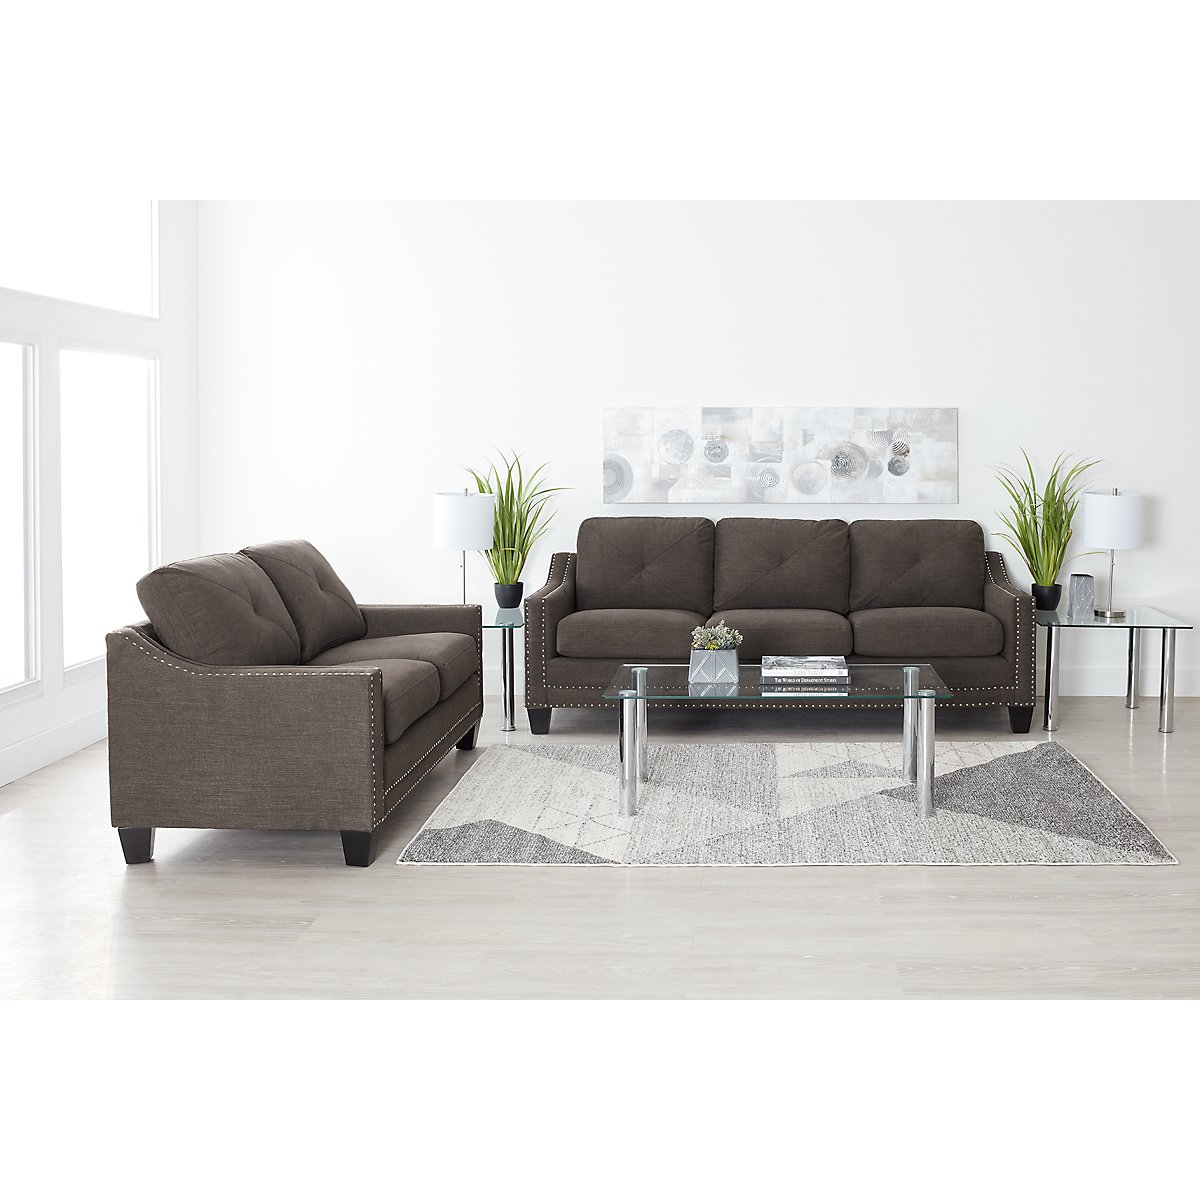 City Furniture: Malone Dark Gray Microfiber Small Sofa